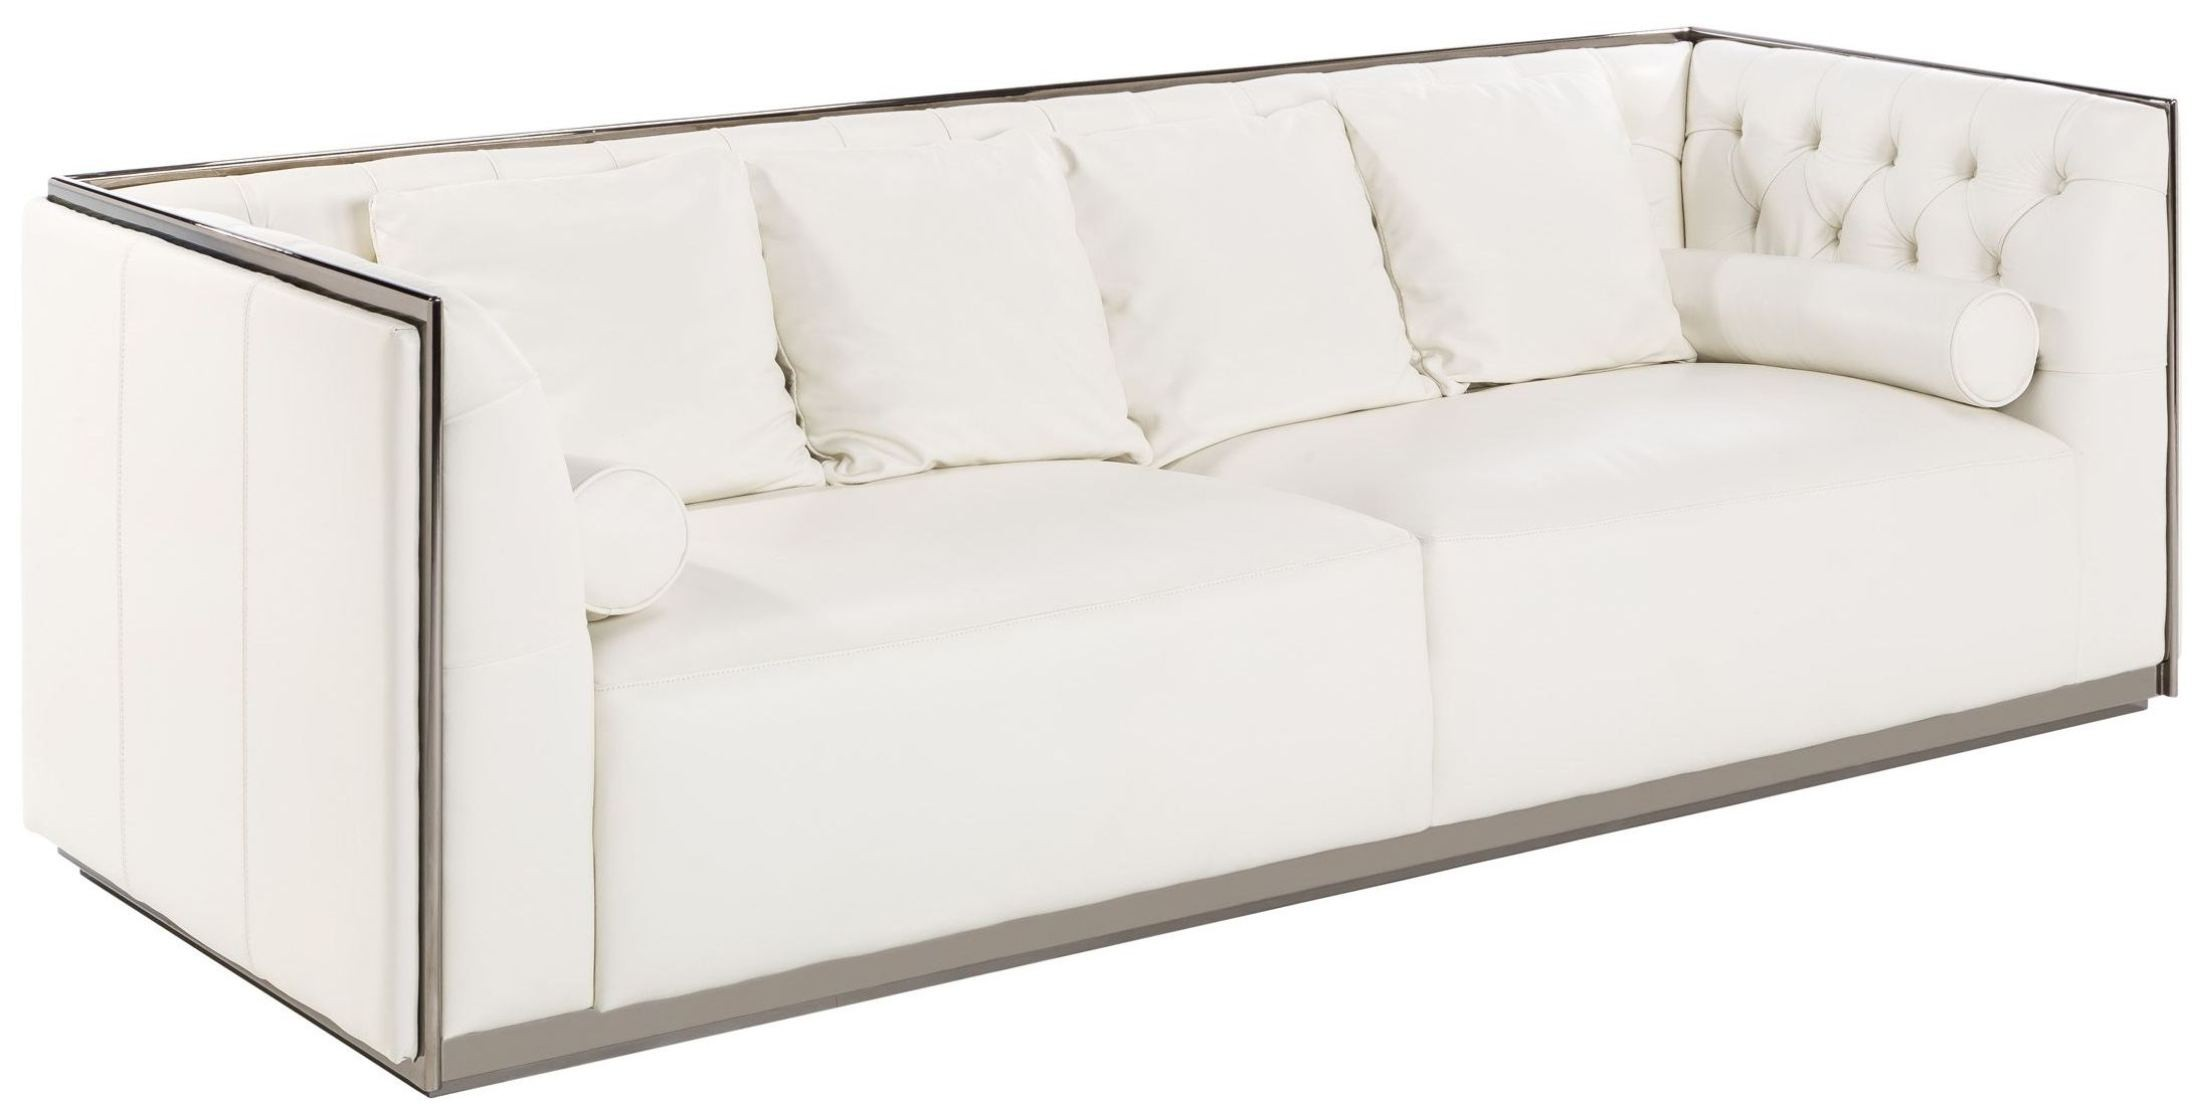 Maxime white and black stainless steel frame leather sofa 100683 sunpan modern home Steel frame sofa